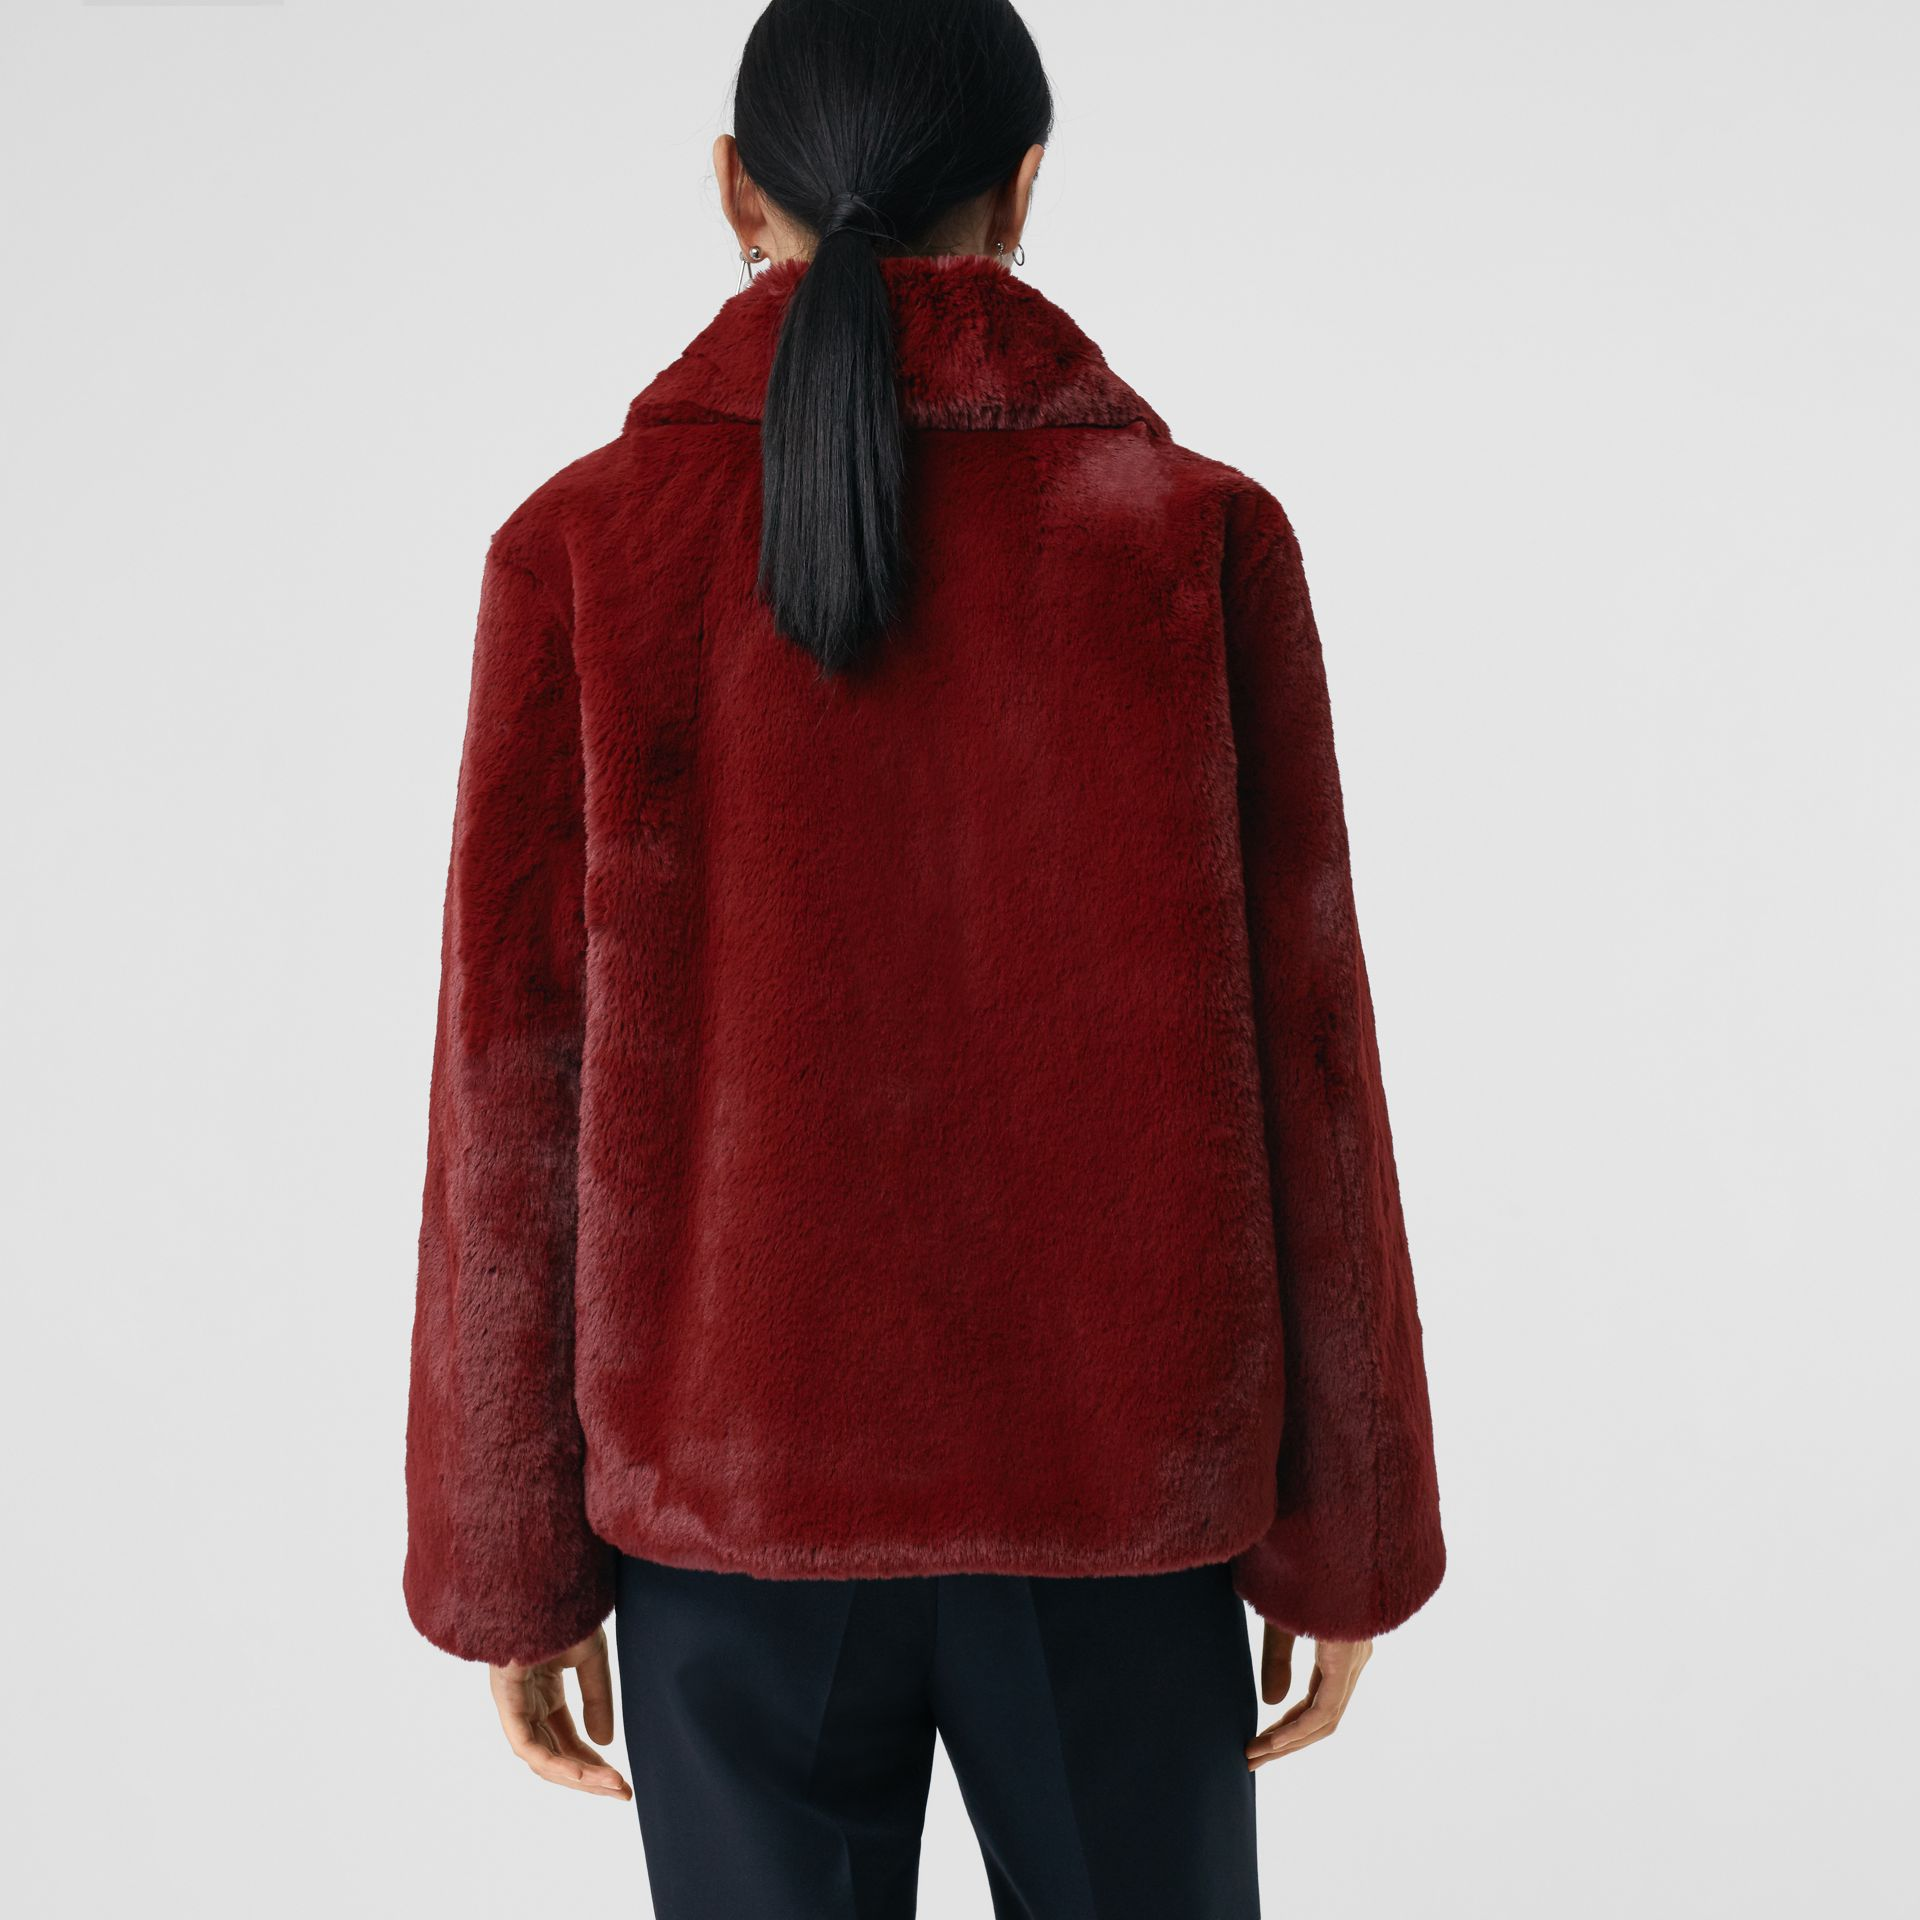 Faux Fur Single-Breasted Jacket in Burgundy - Women | Burberry - gallery image 2